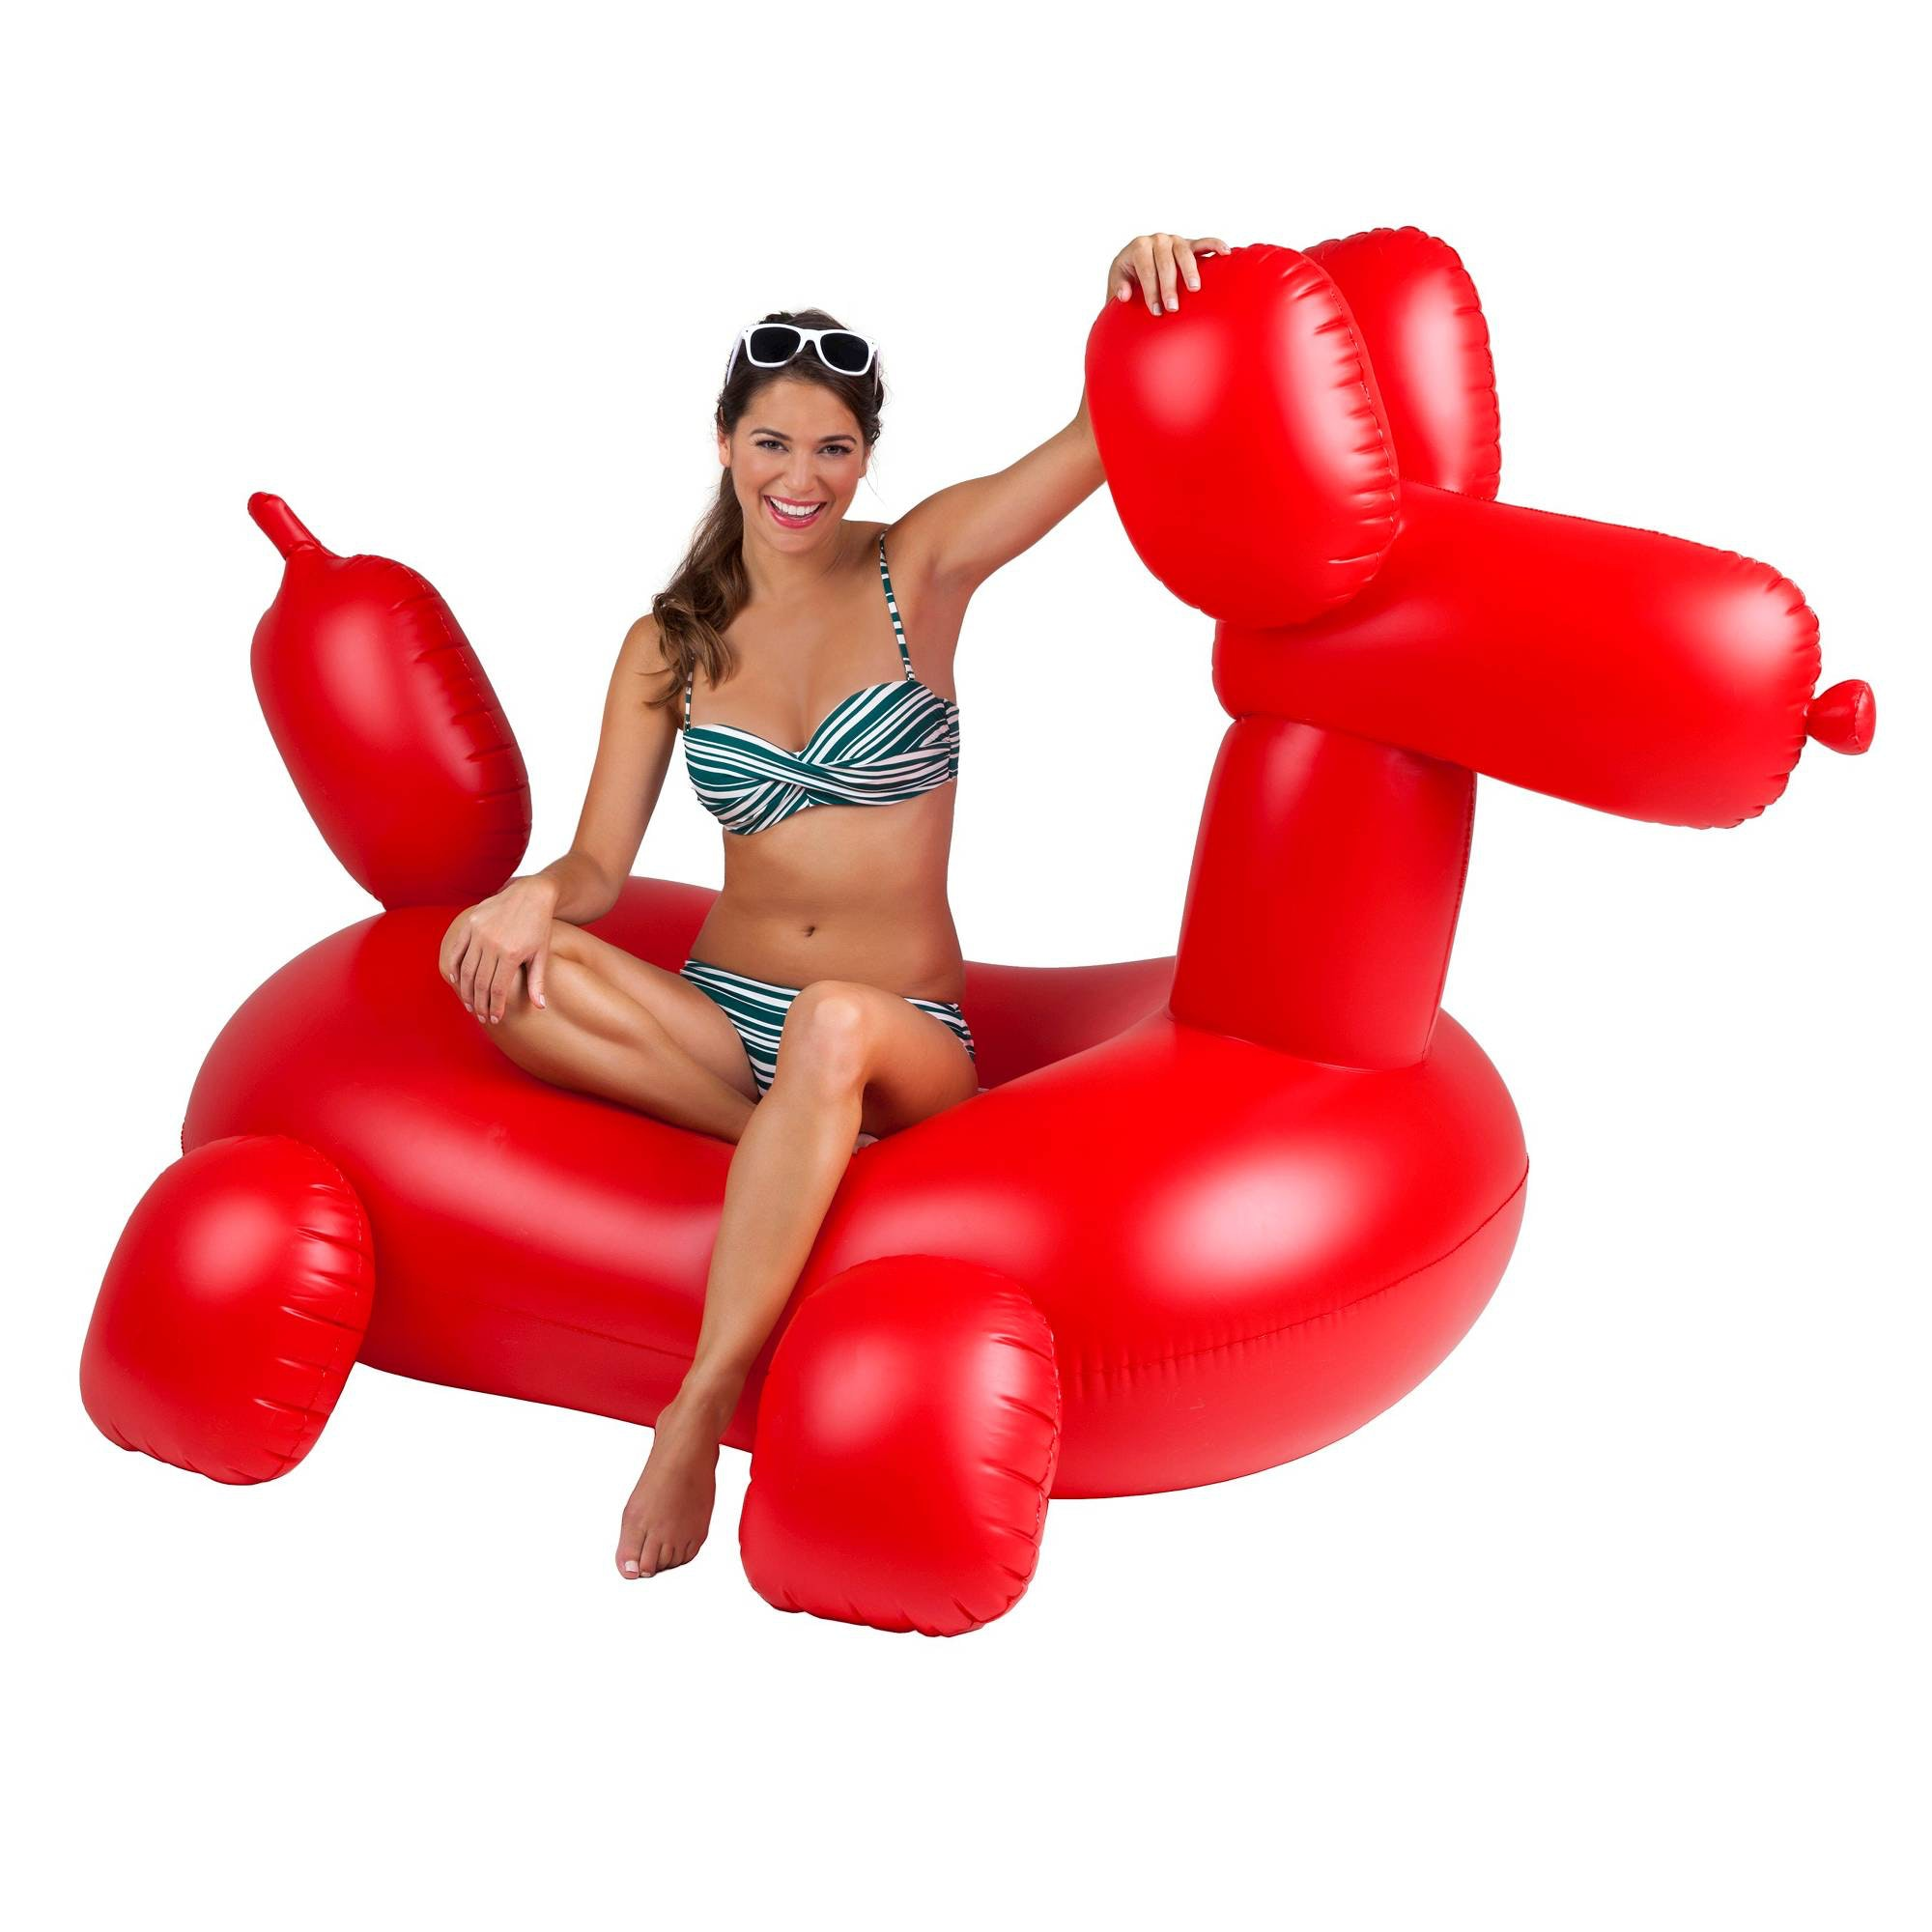 The most awesome balloon animal you'll ever ride